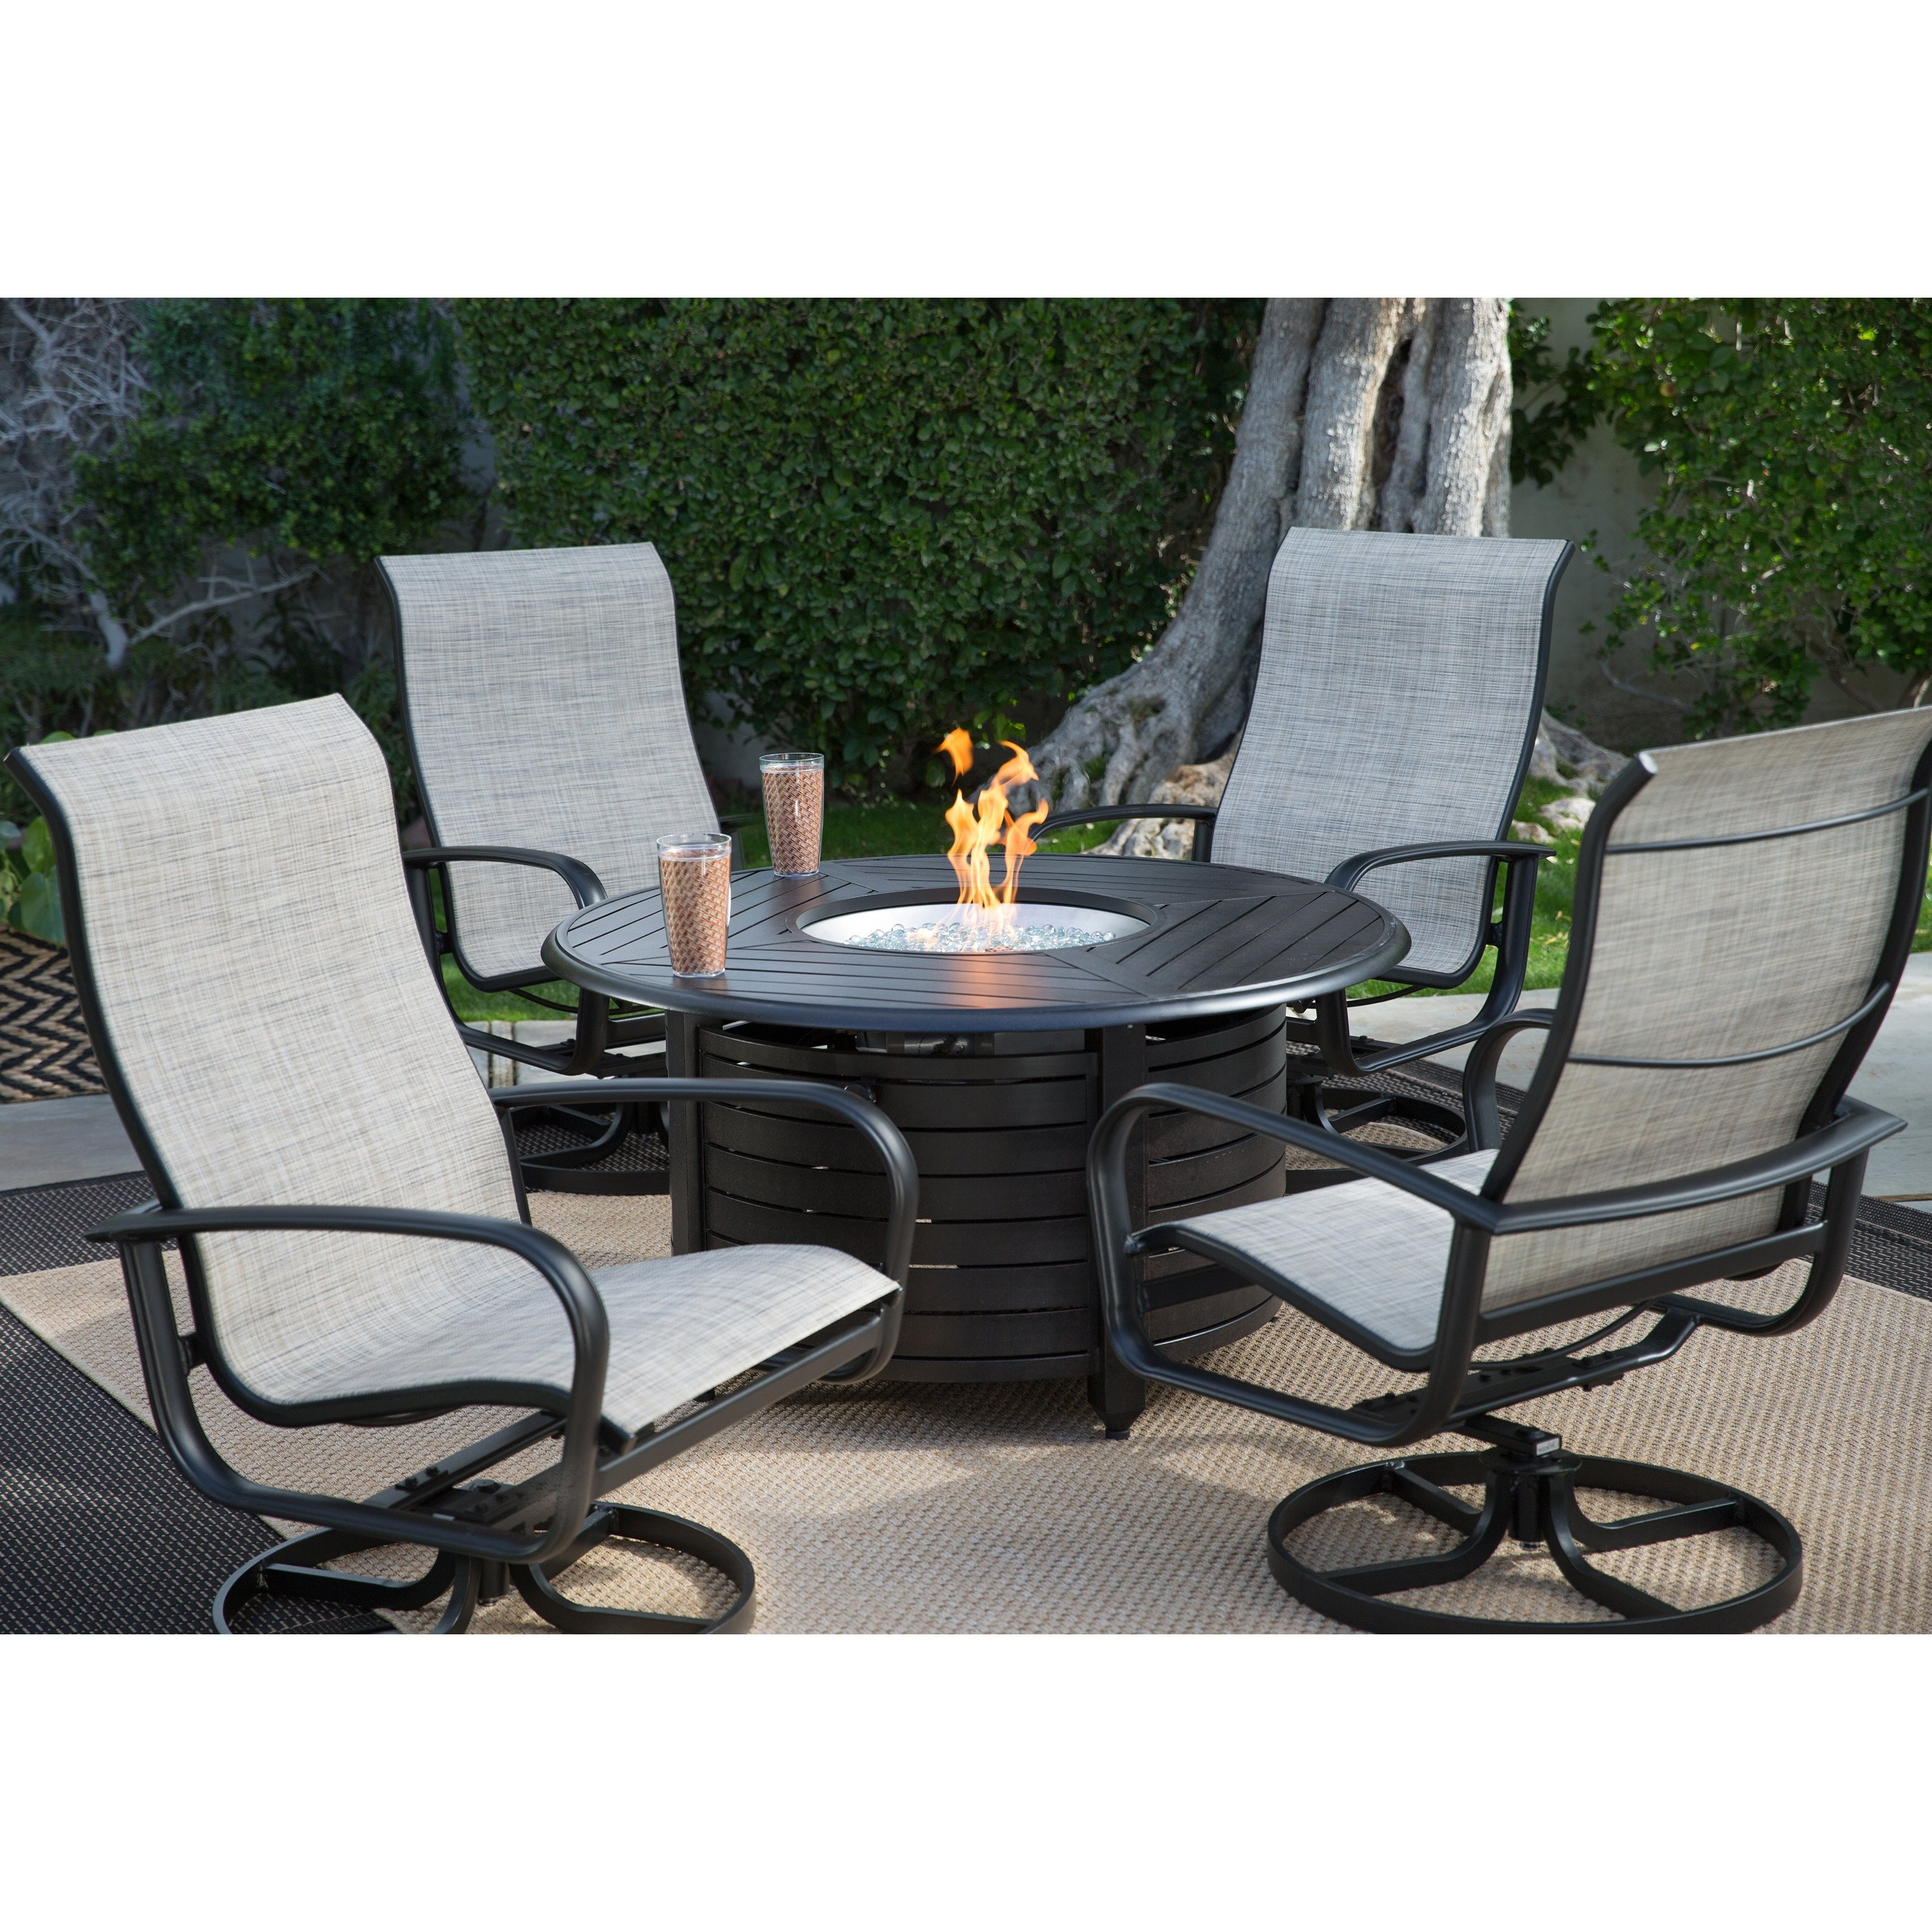 Wonderful Outdoor Conversation Sets With Fire Pit Belham Living Pertaining To Well Known Sling Patio Conversation Sets (View 7 of 20)